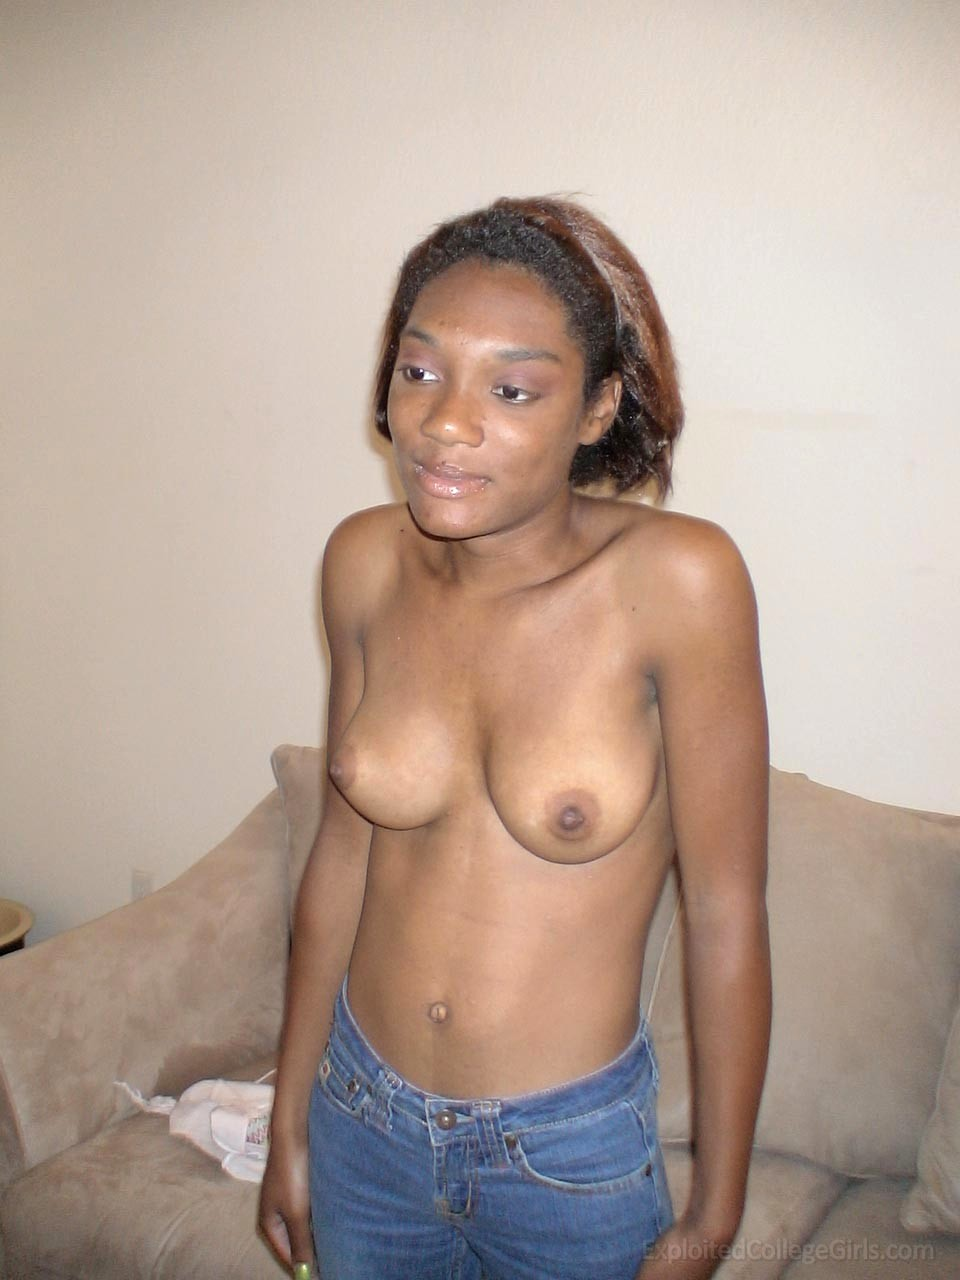 Casually, sexy ebony black college girls can